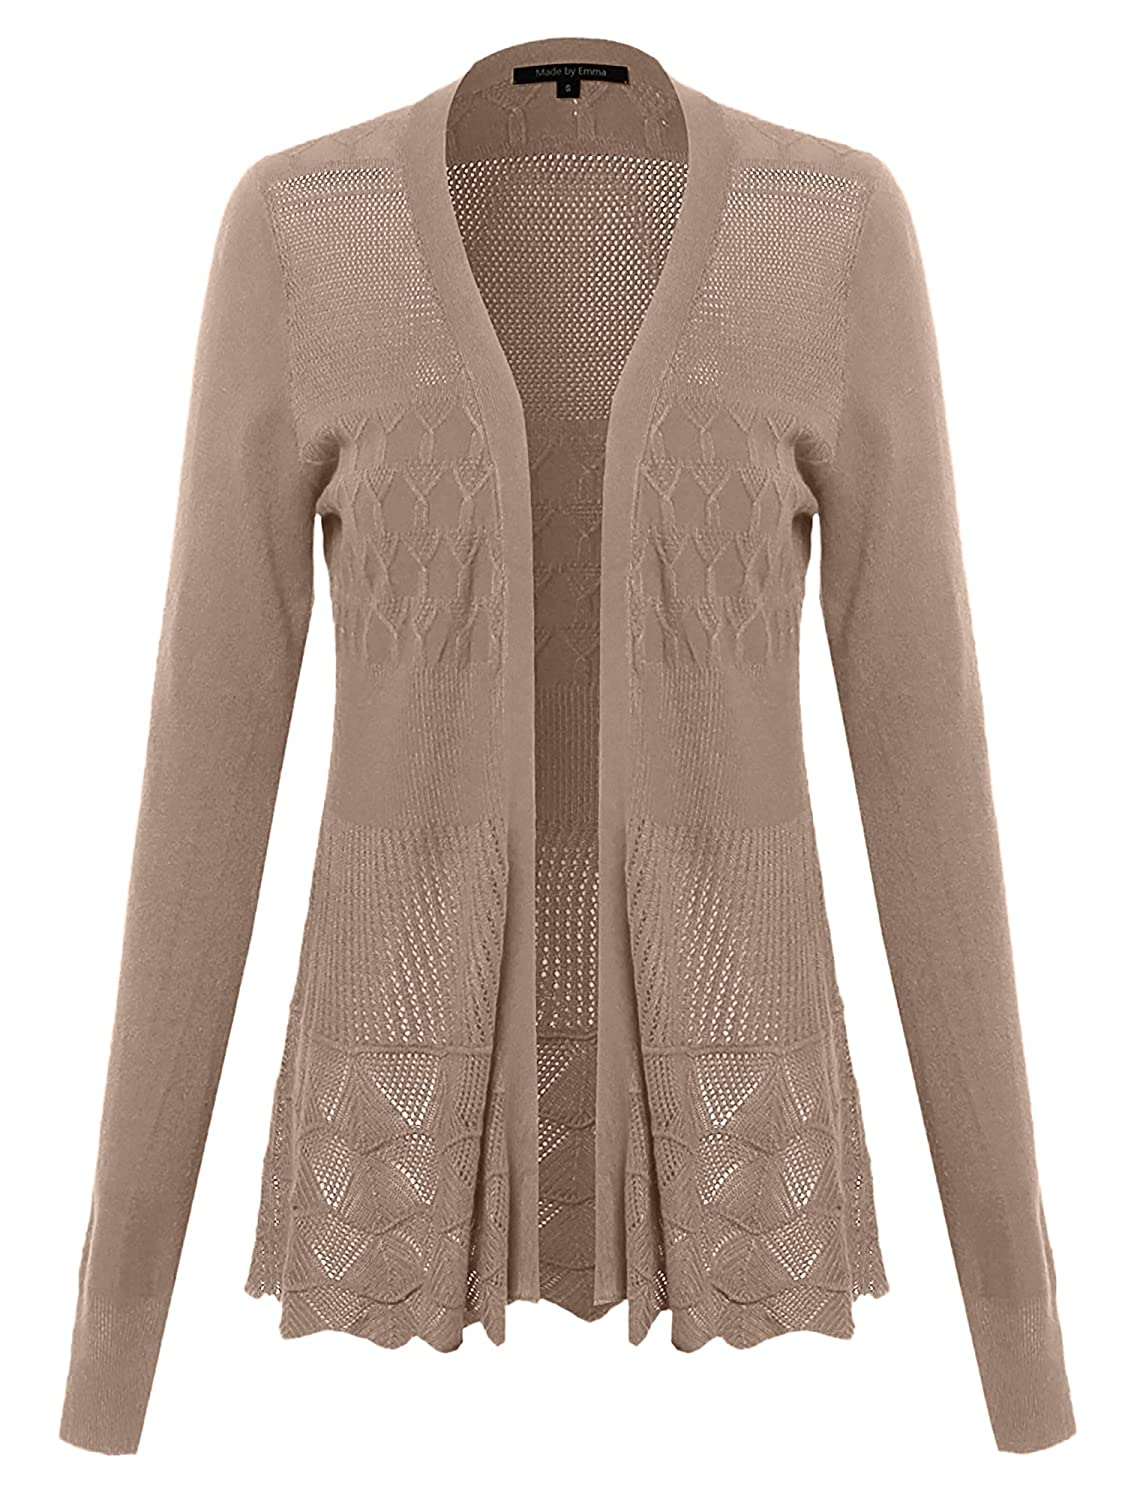 Fwocal014 Nude Made by Emma Women's Embroidery Lace Patterned Long Sleeves Cardigan Sweater